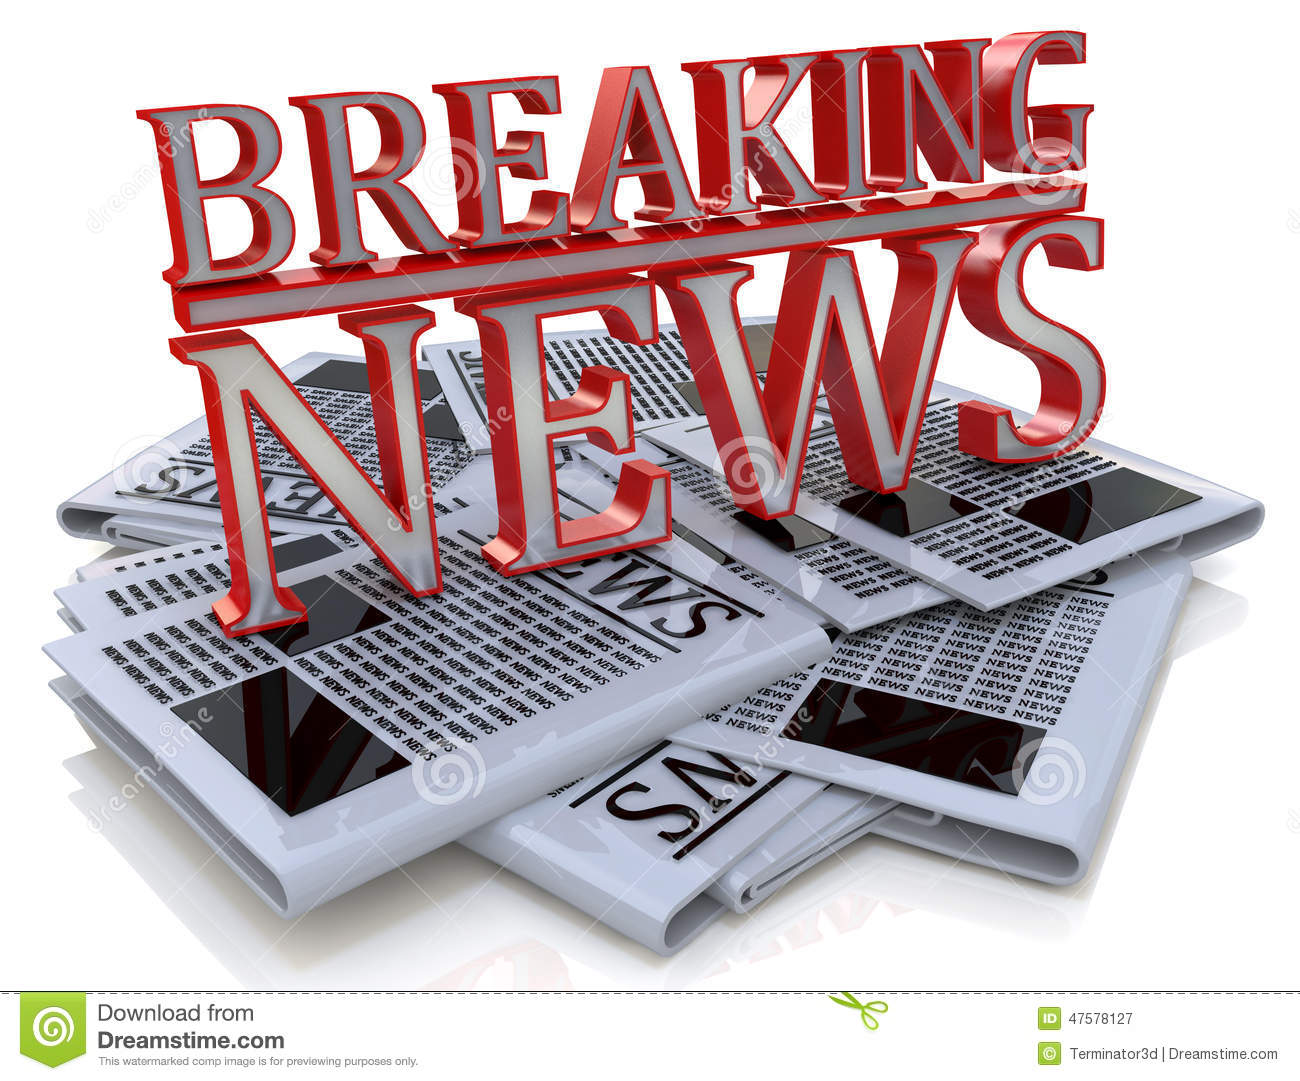 Breaking news graphic daily news newspaper stock for Daily design news